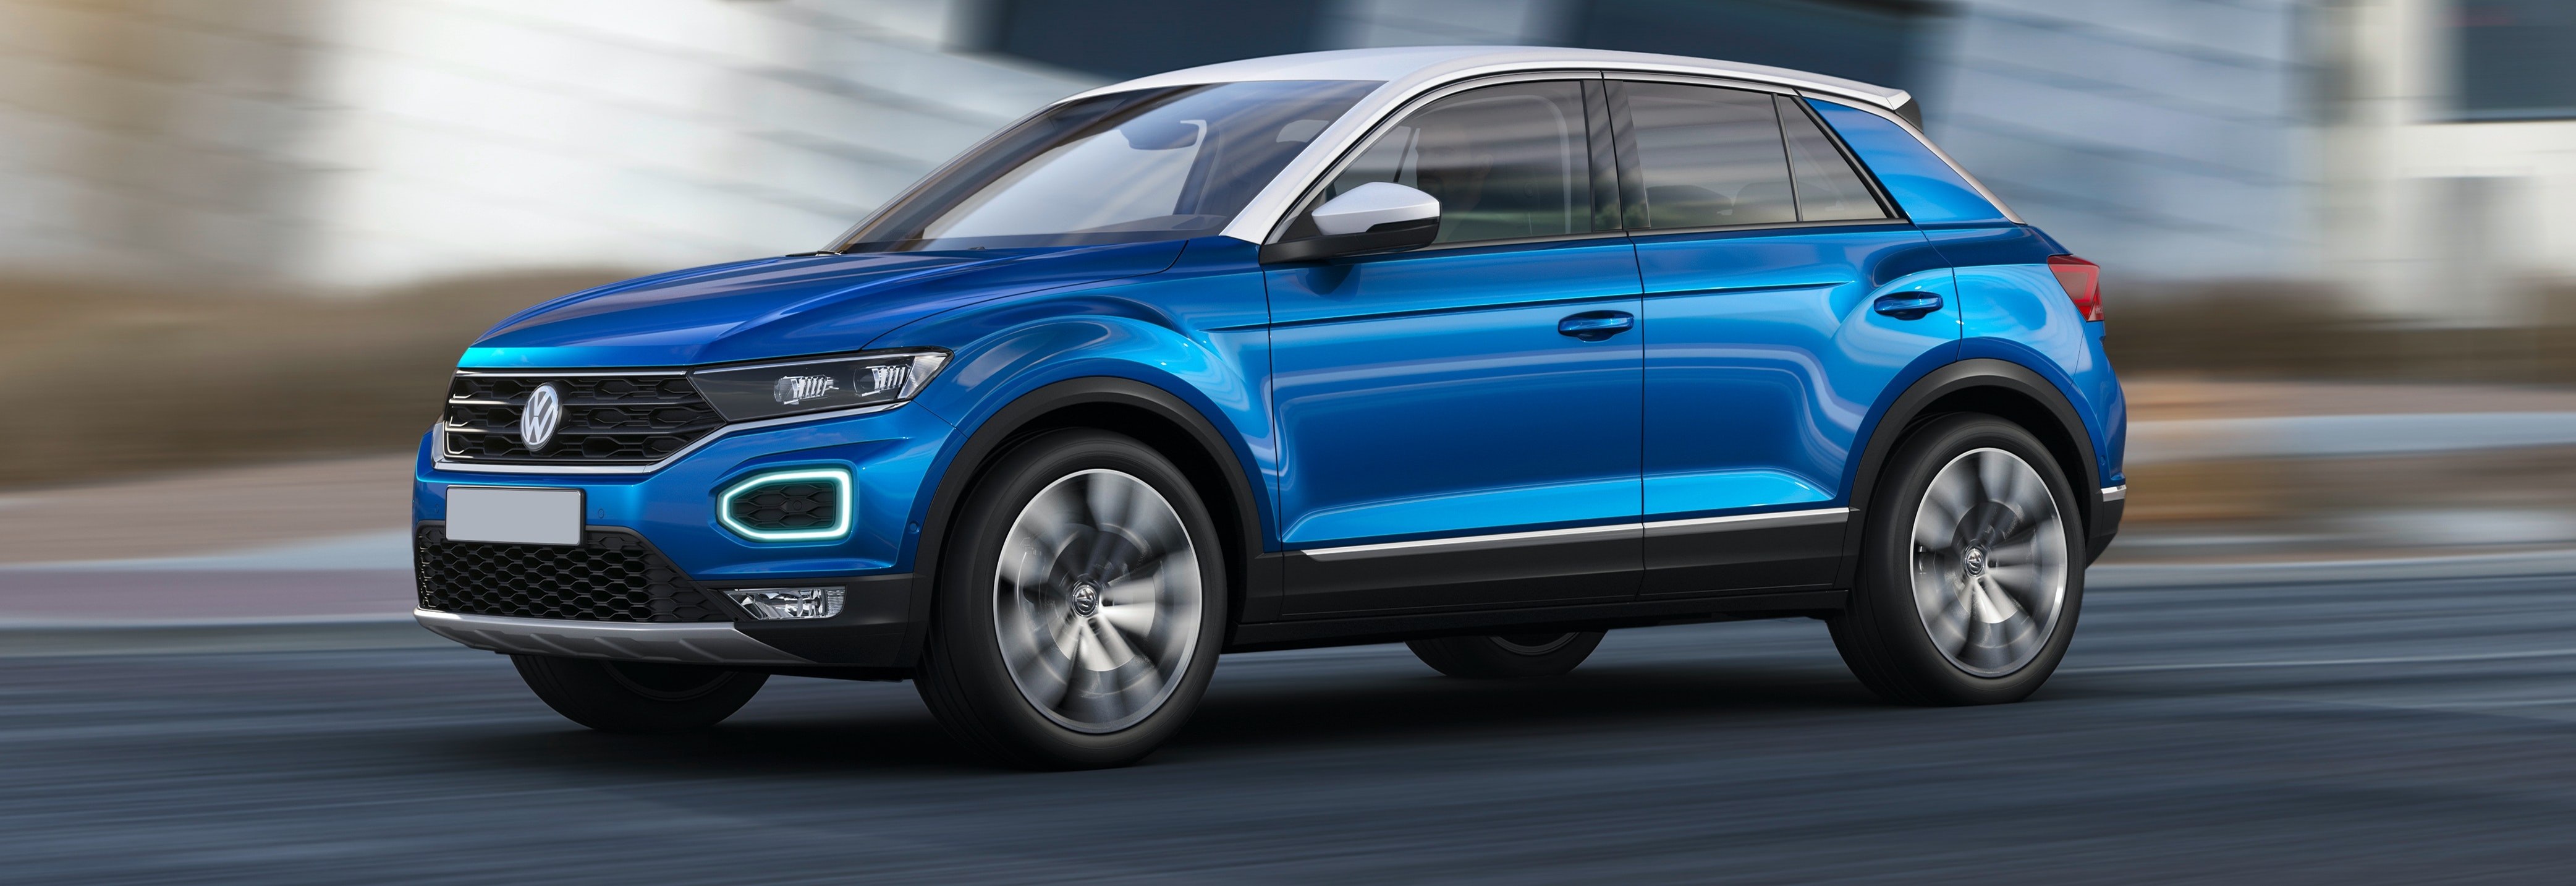 2018 VW T-Roc price, specs and release date | carwow